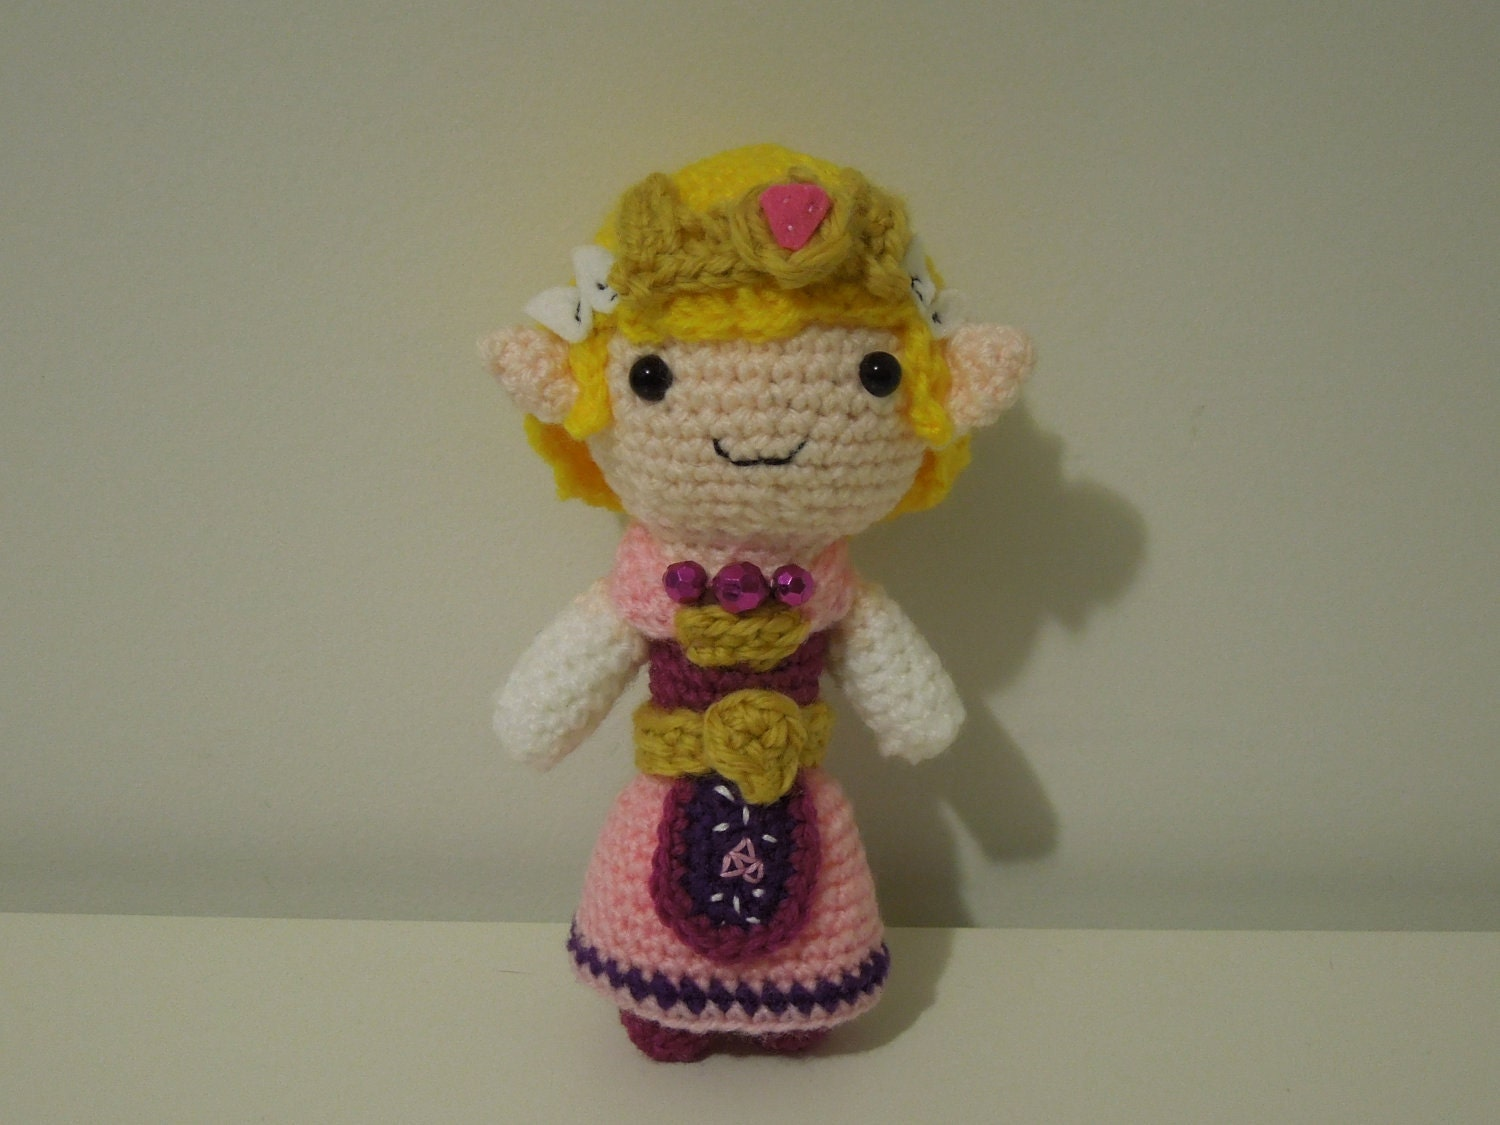 Crochet Zelda Patterns : Princess Zelda CROCHET PATTERN PDF by TheAmigurumiZoo on Etsy